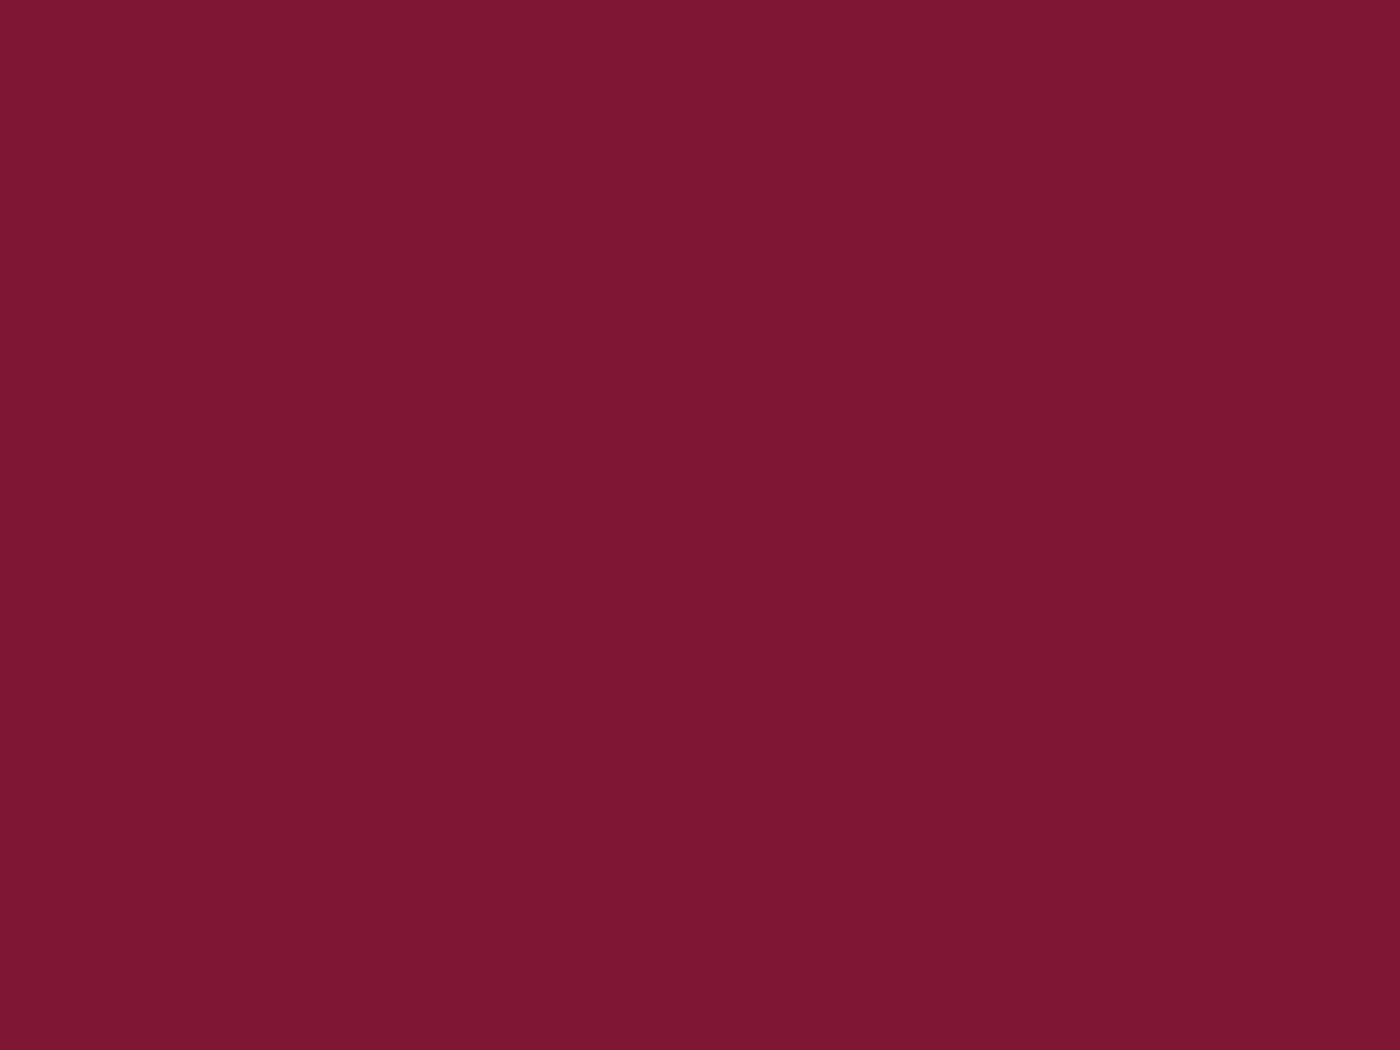 1400x1050 Claret Solid Color Background